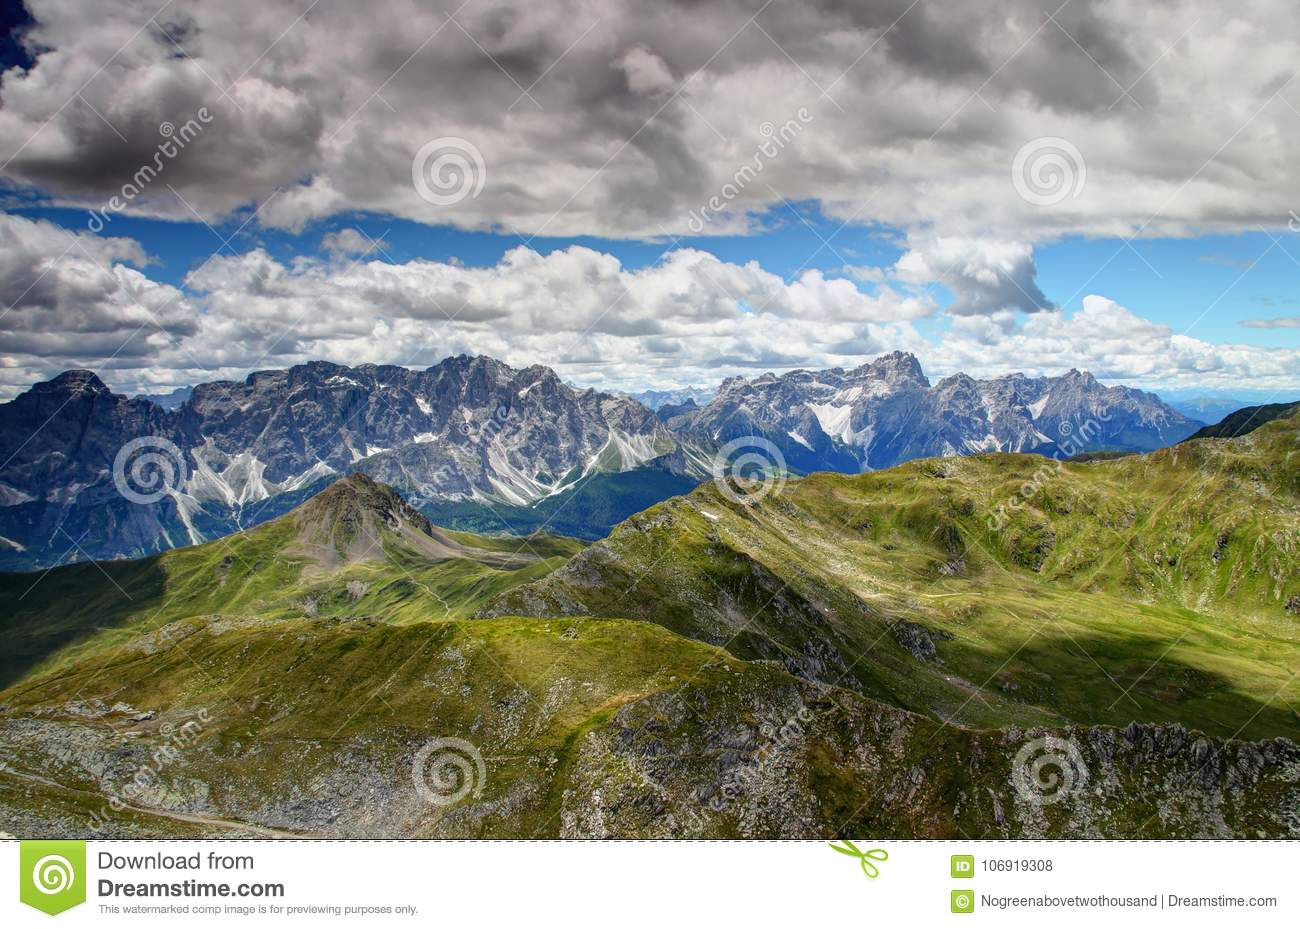 Jagged Sexten Dolomites with green slopes of Carnic Alps Italy